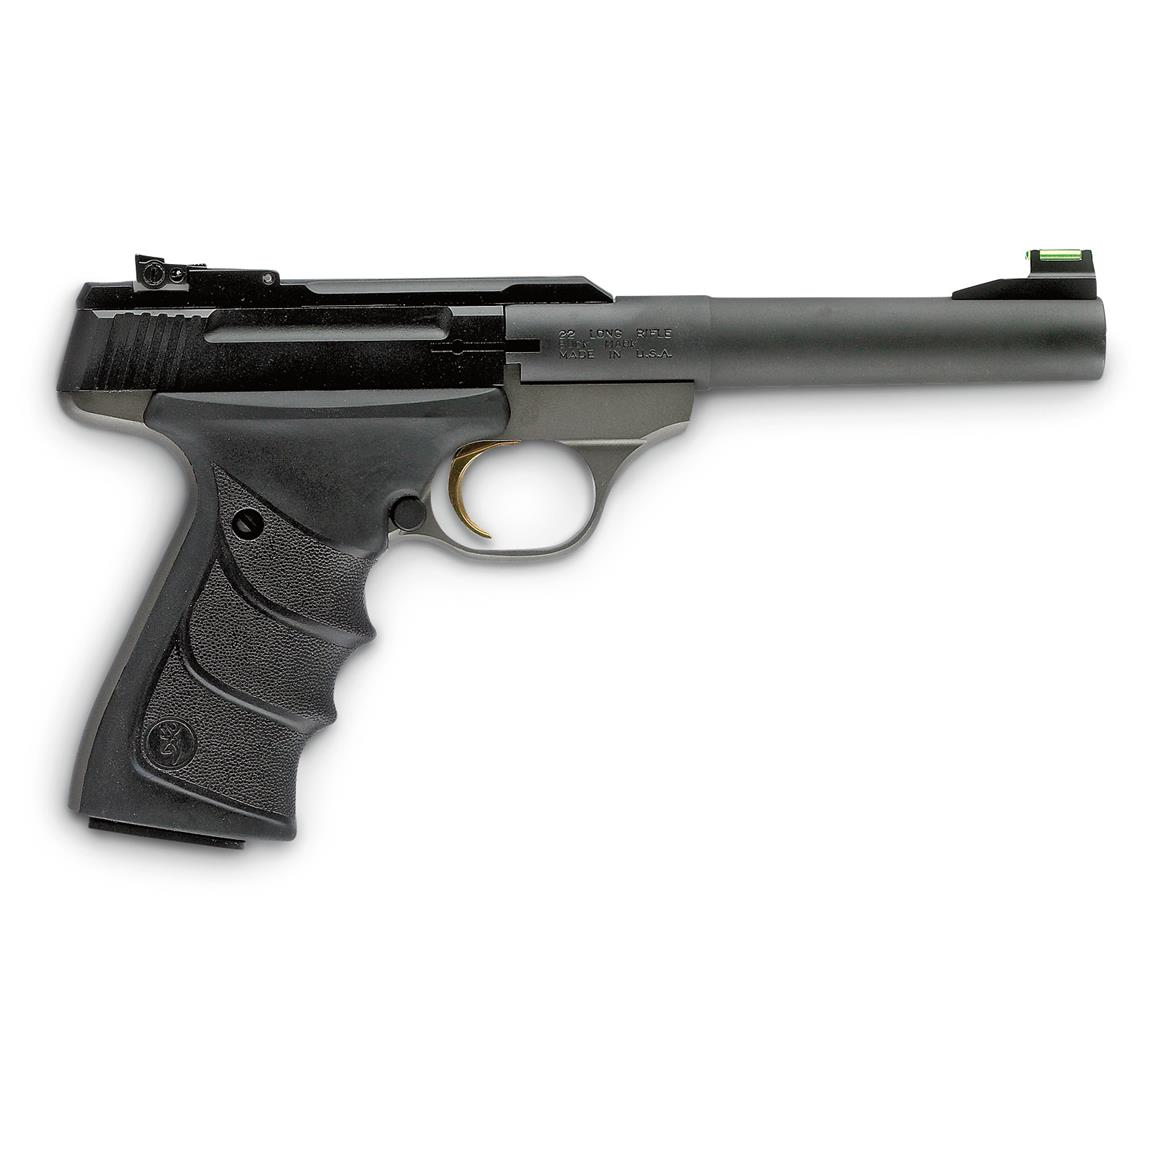 Browning Buck Mark Practical URX, Semi-Automatic, .22LR, TruGlo Fiber Optic Sights, 10+1 Rounds